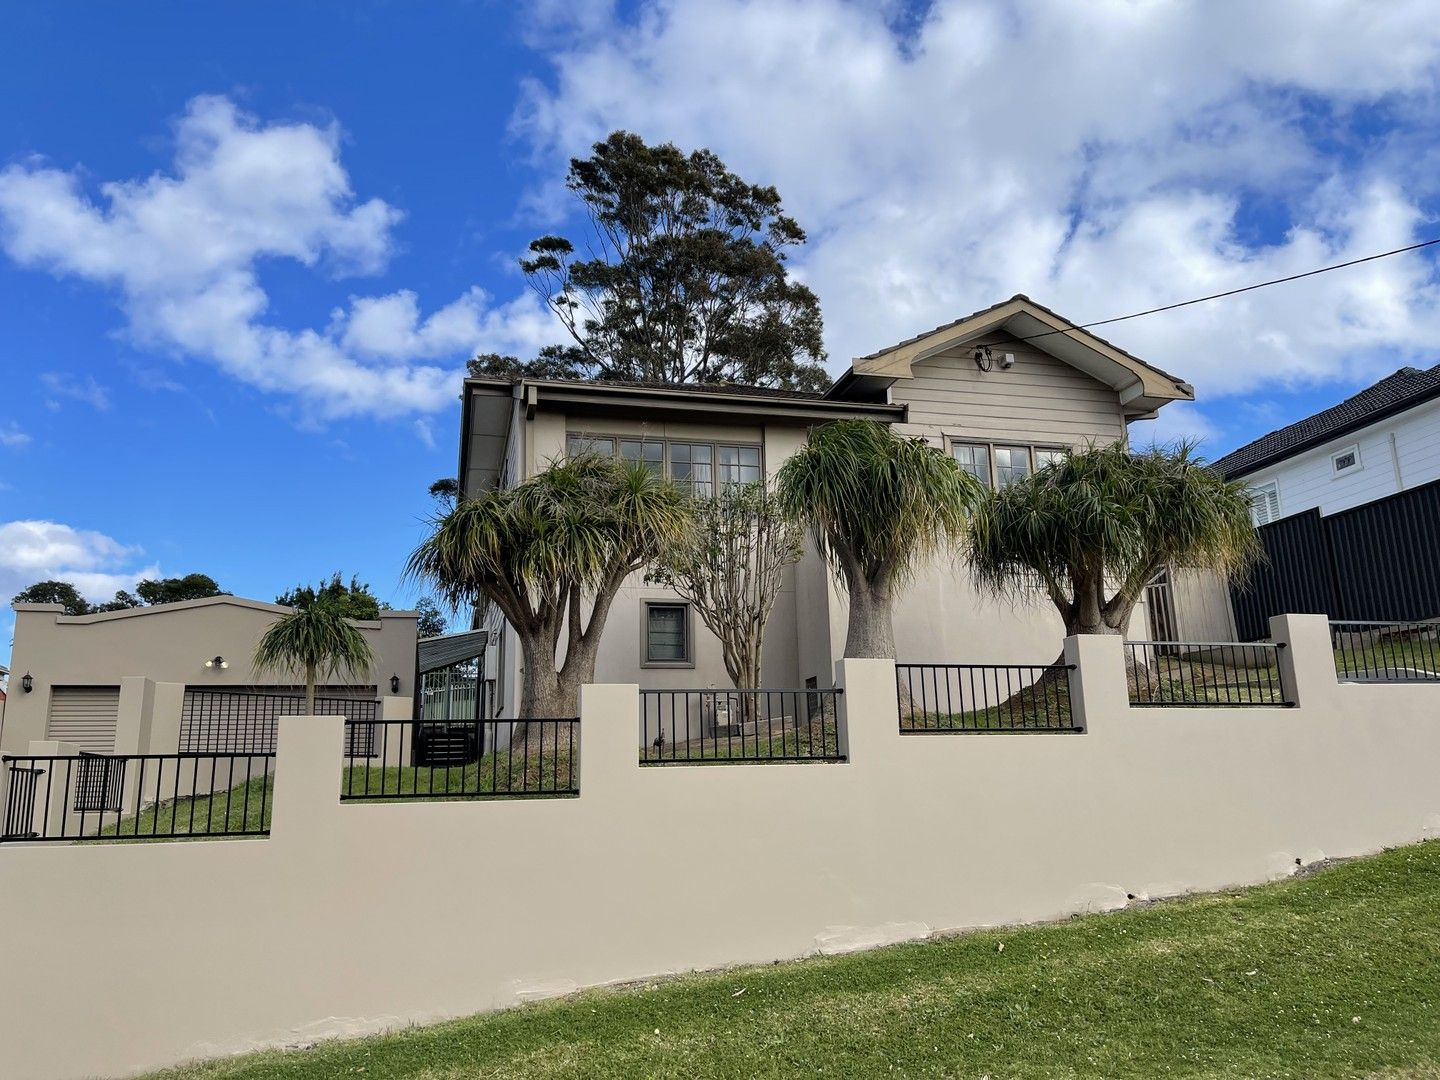 34 Hillcrest Street, Wollongong NSW 2500, Image 0